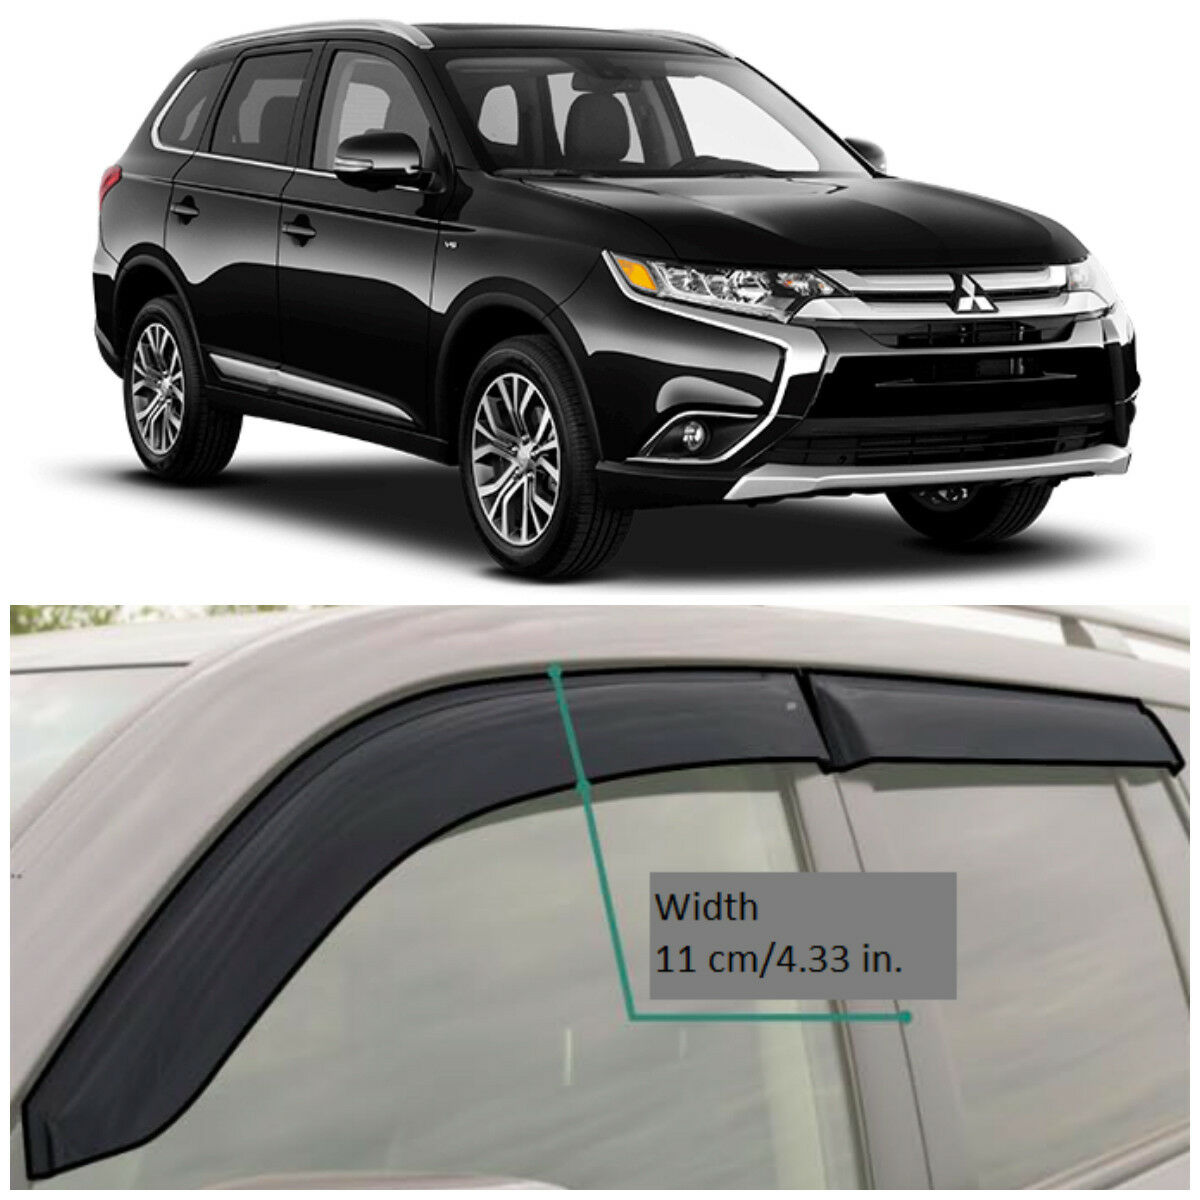 ME43712 Window Visors Vent Wide Deflectors For Mitsubishi Outlander 2012-2018